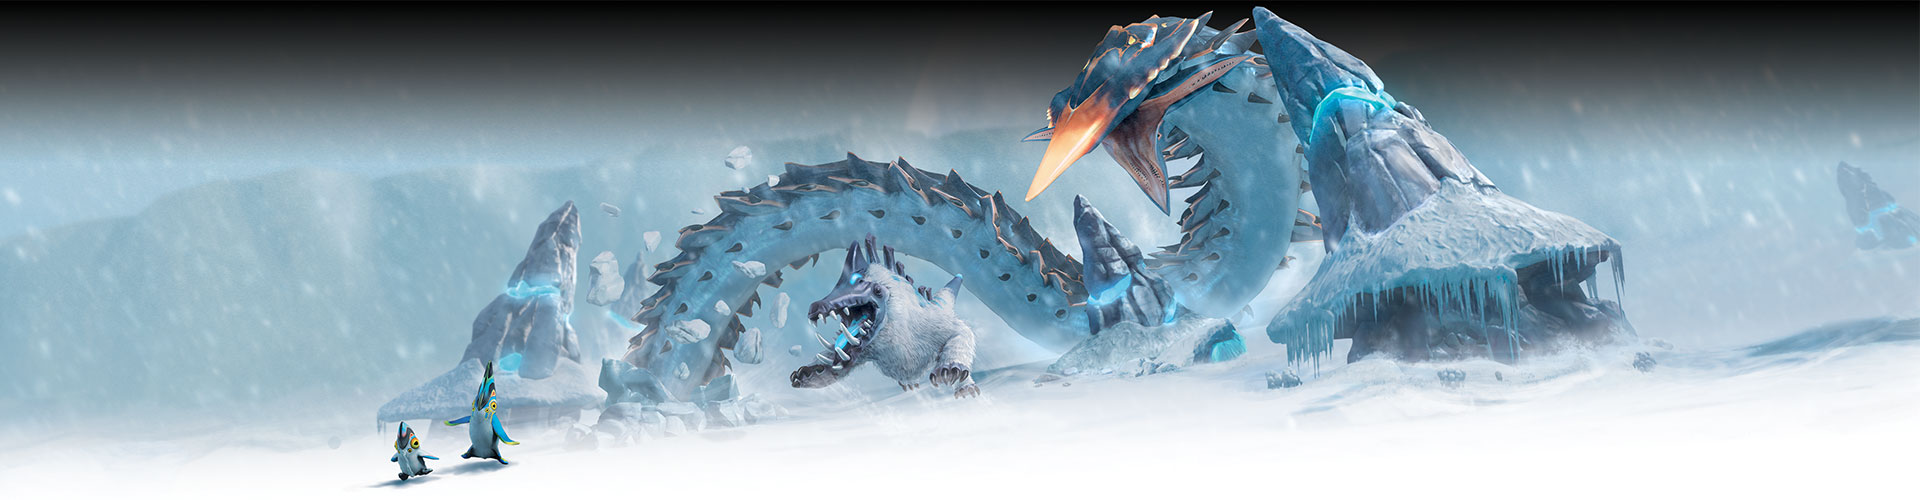 A winter landscape with a giant snow worm, an alien monster dog, and two creatures that look vaguely like penguins.